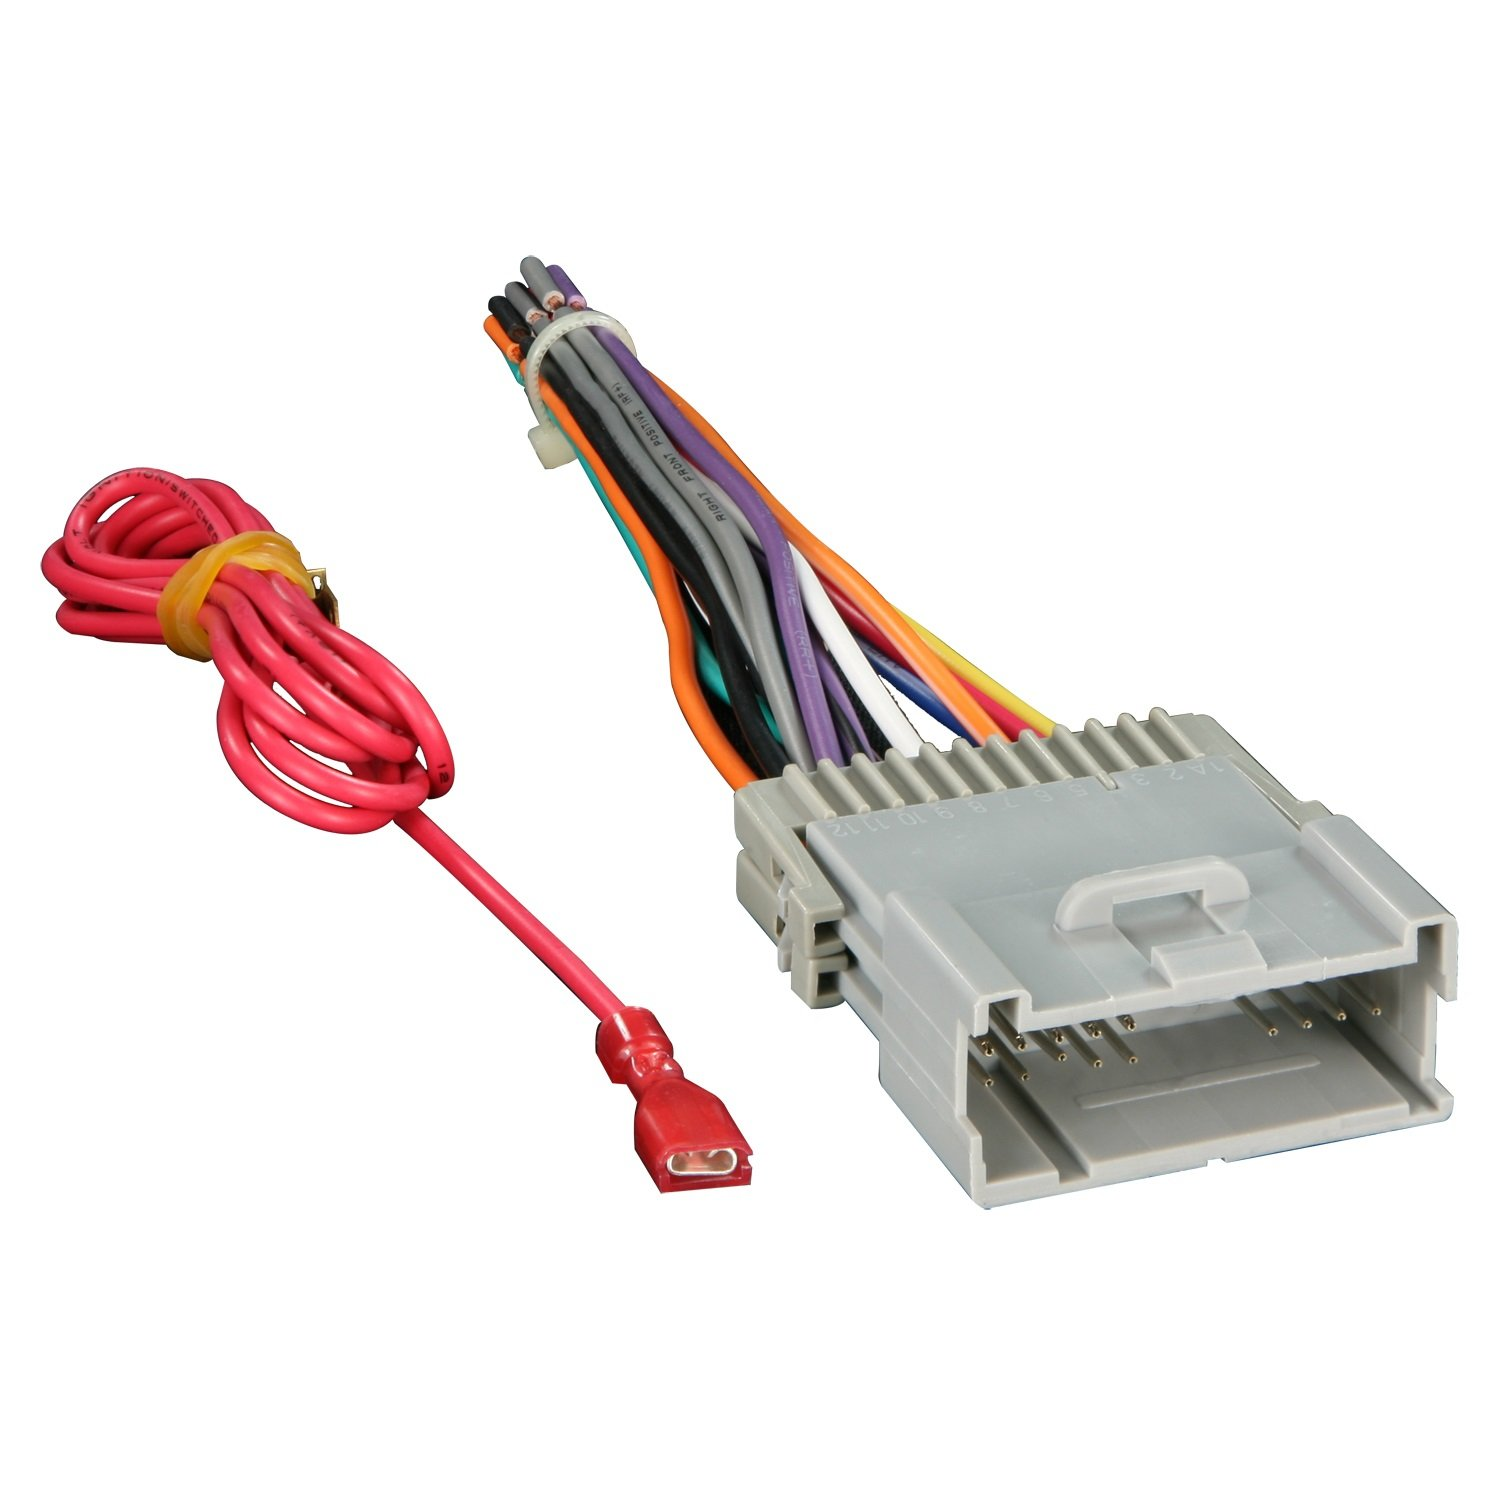 61eewxp9orL._SL1500_ amazon com metra 70 2003 radio wiring harness for gm 98 08 what wiring harness do i need for my car at gsmx.co